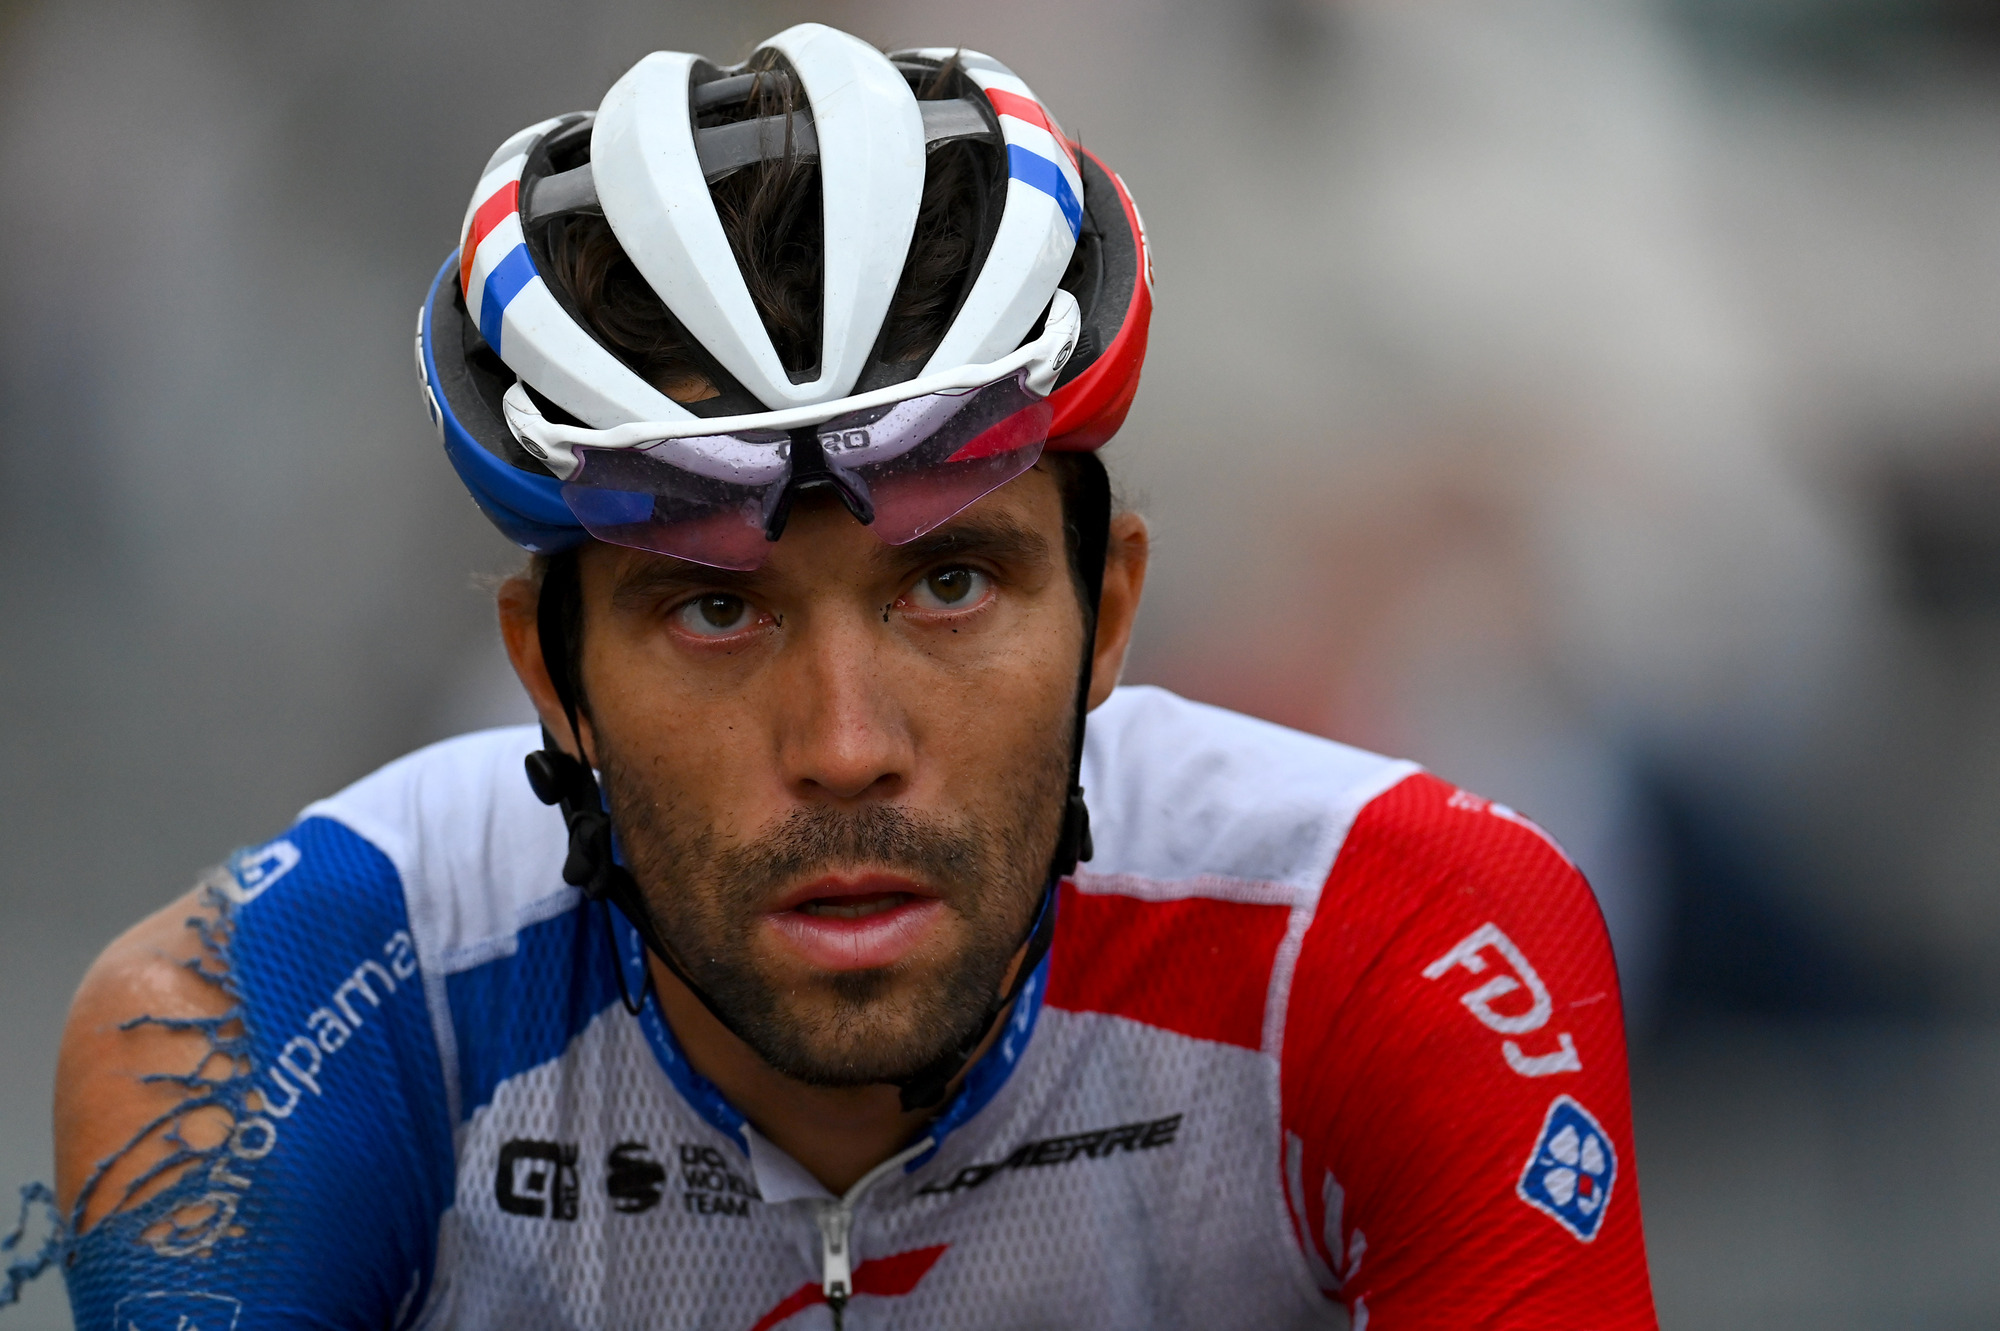 Tour de France 2020 107th Edition 1st stage Nice Nice 156 km 29082020 Thibaut Pinot FRA Groupama FDJ photo POOL Vincent KalutPNBettiniPhoto2020